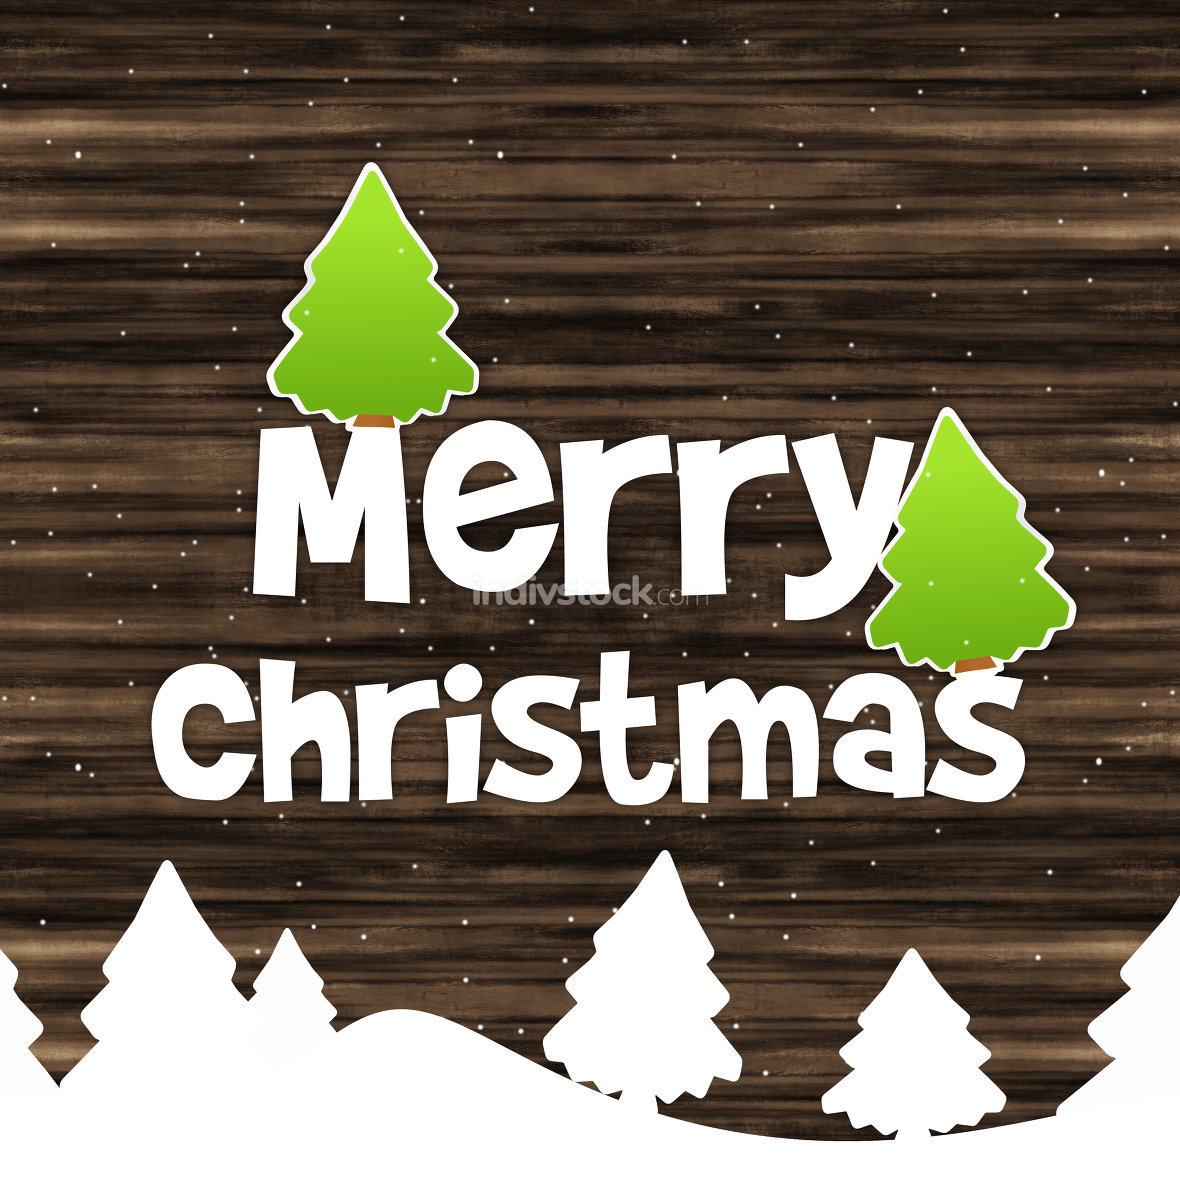 free download: Merry Christmas Wood Texture Background